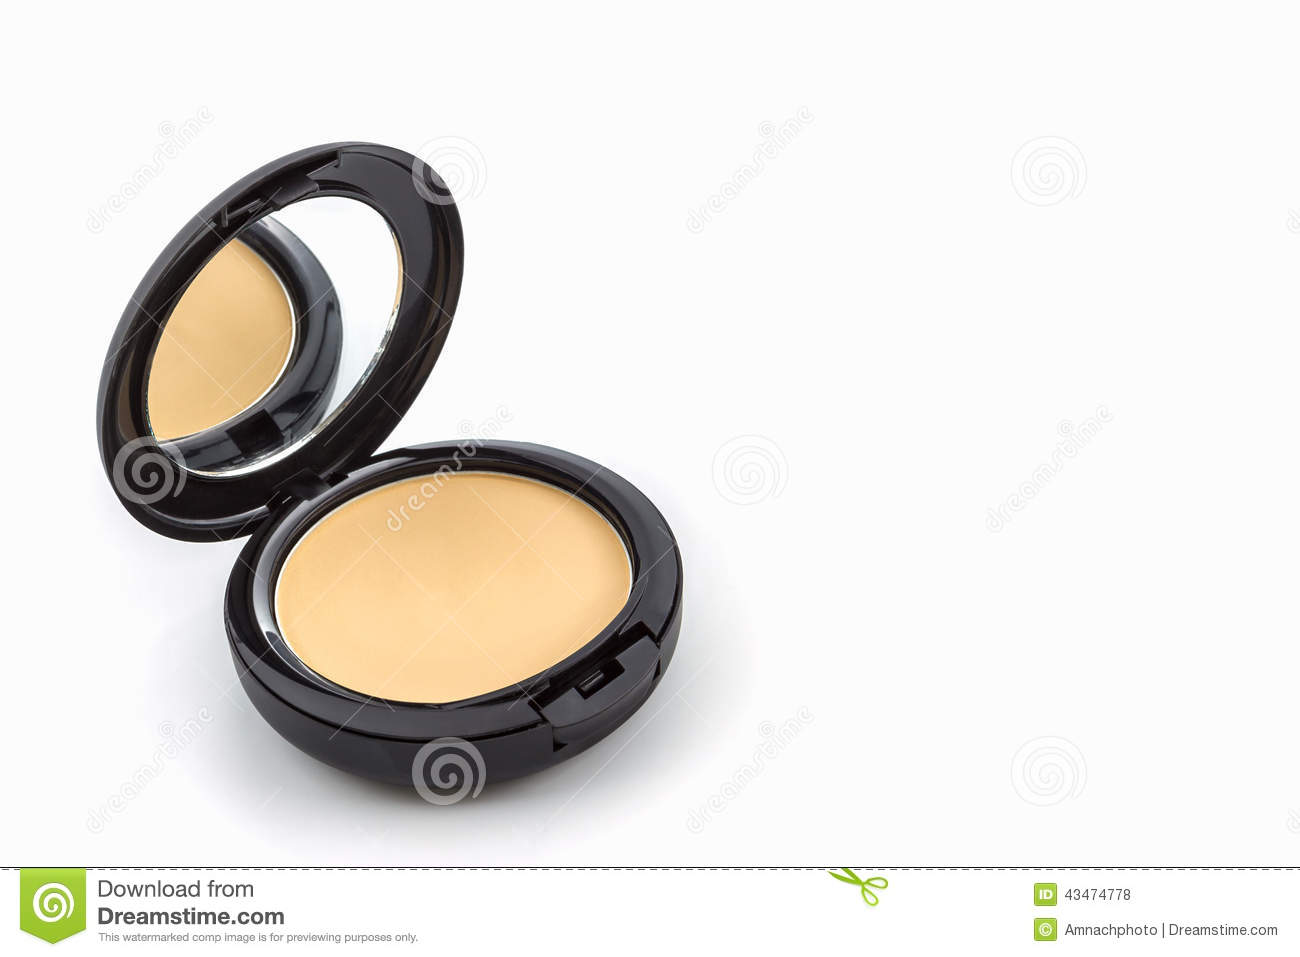 Makeup, Face powder in black case.